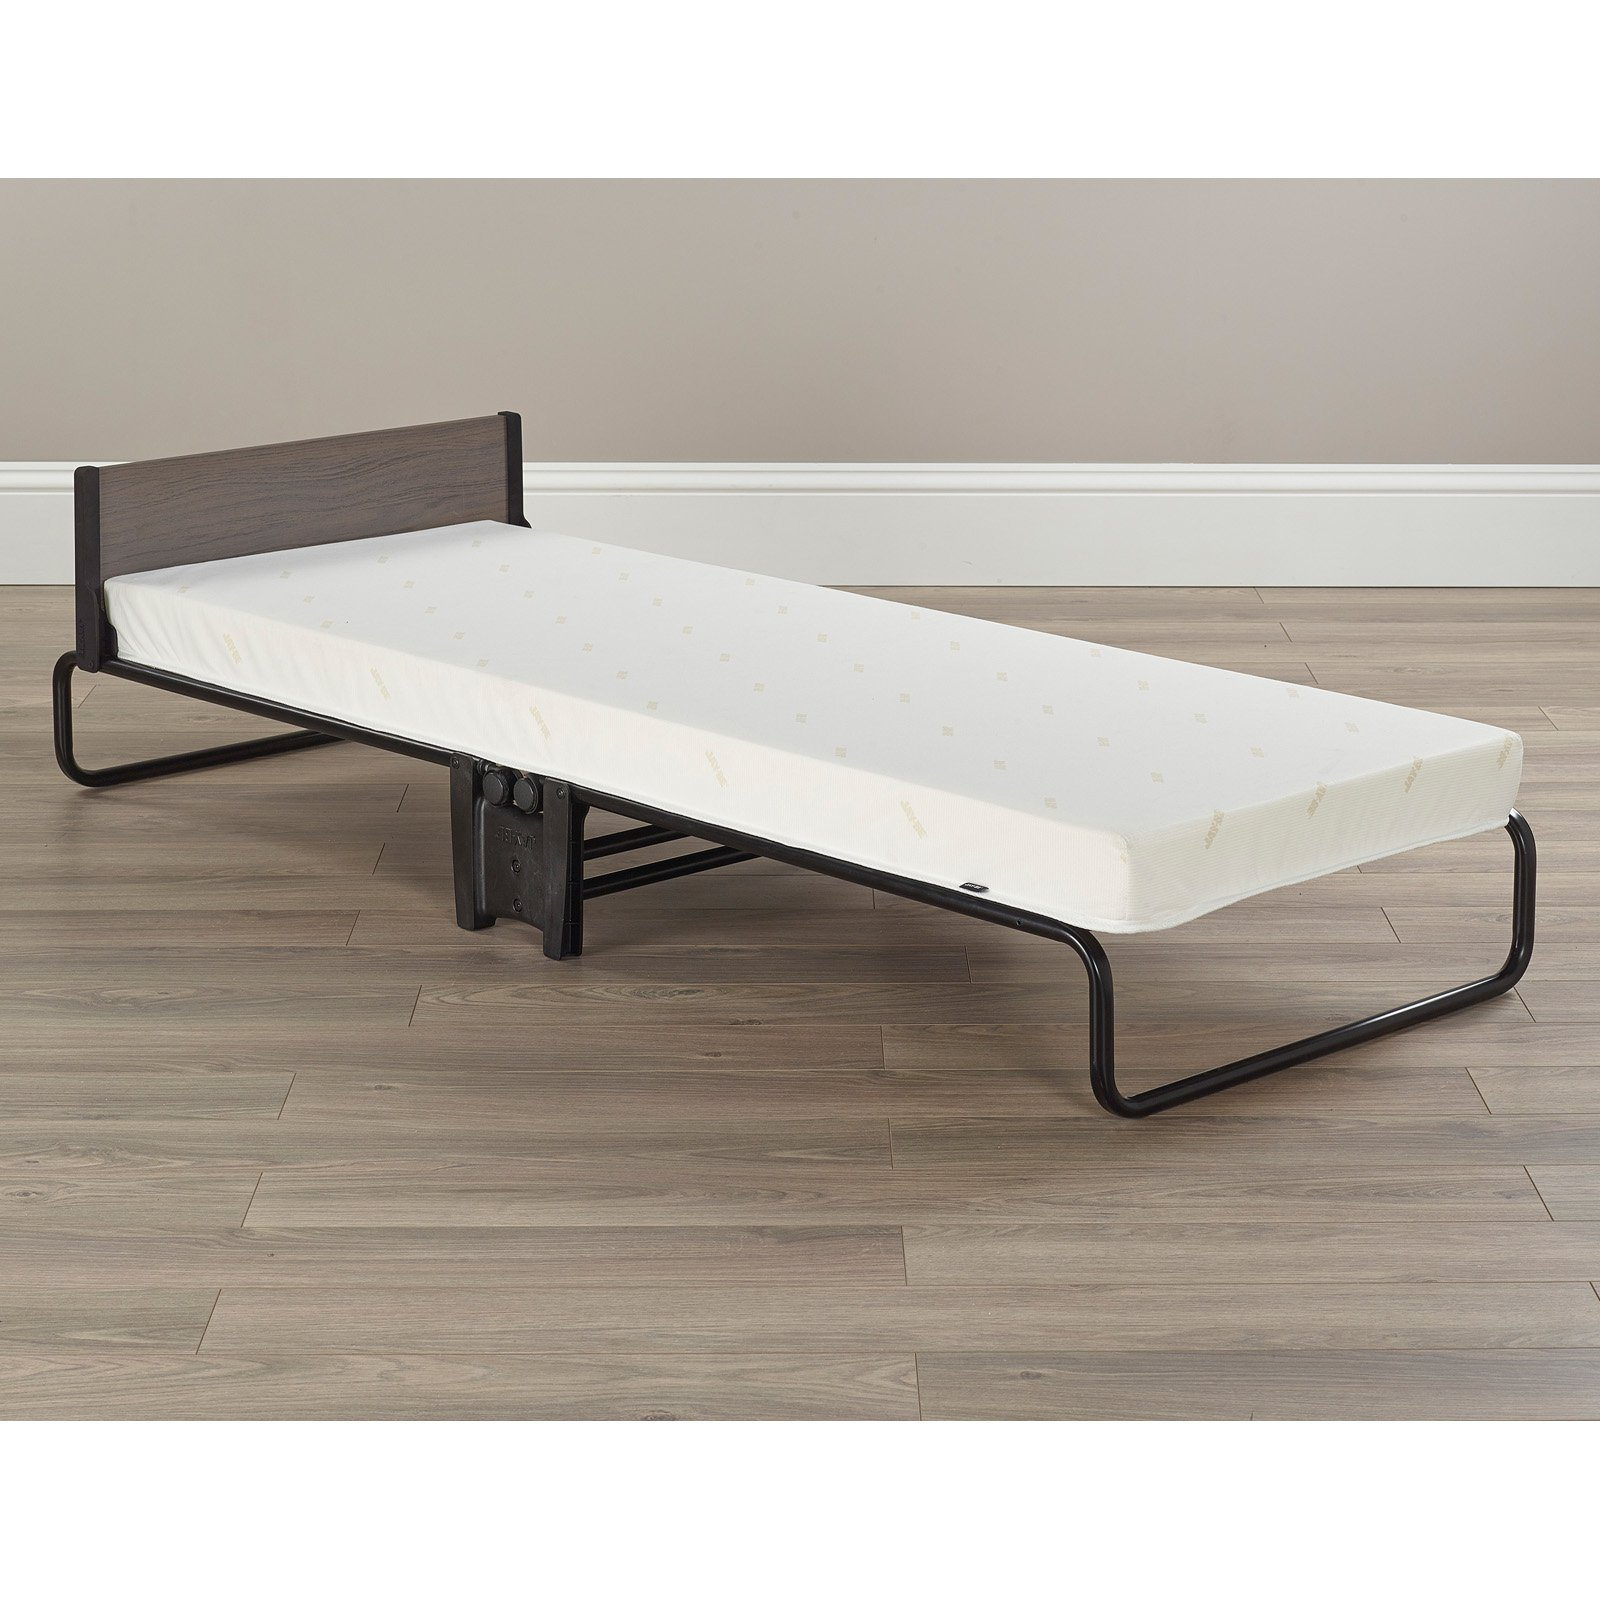 JAY-BE Inspire Folding Guest Bed with Airflow Mattress